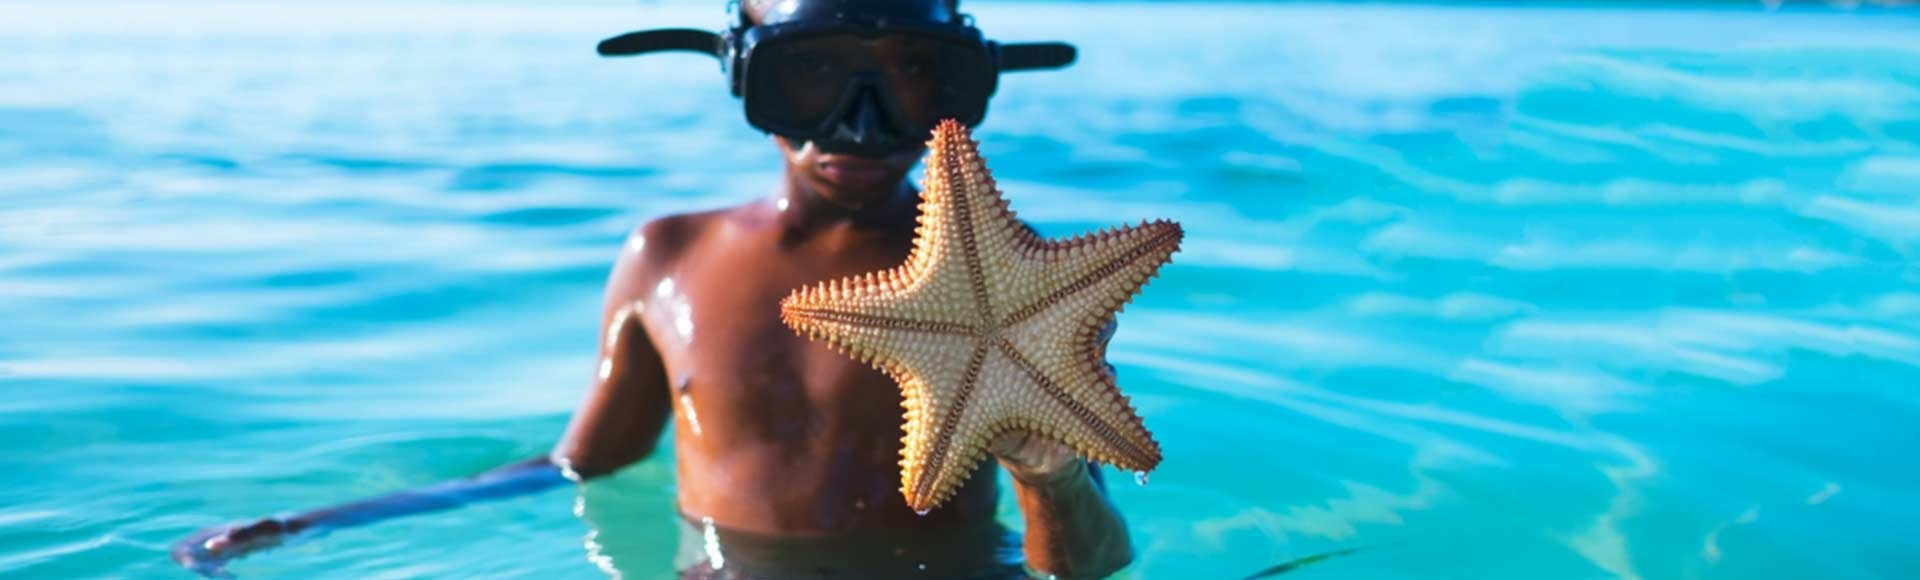 boy swimming in the ocean with a star fish